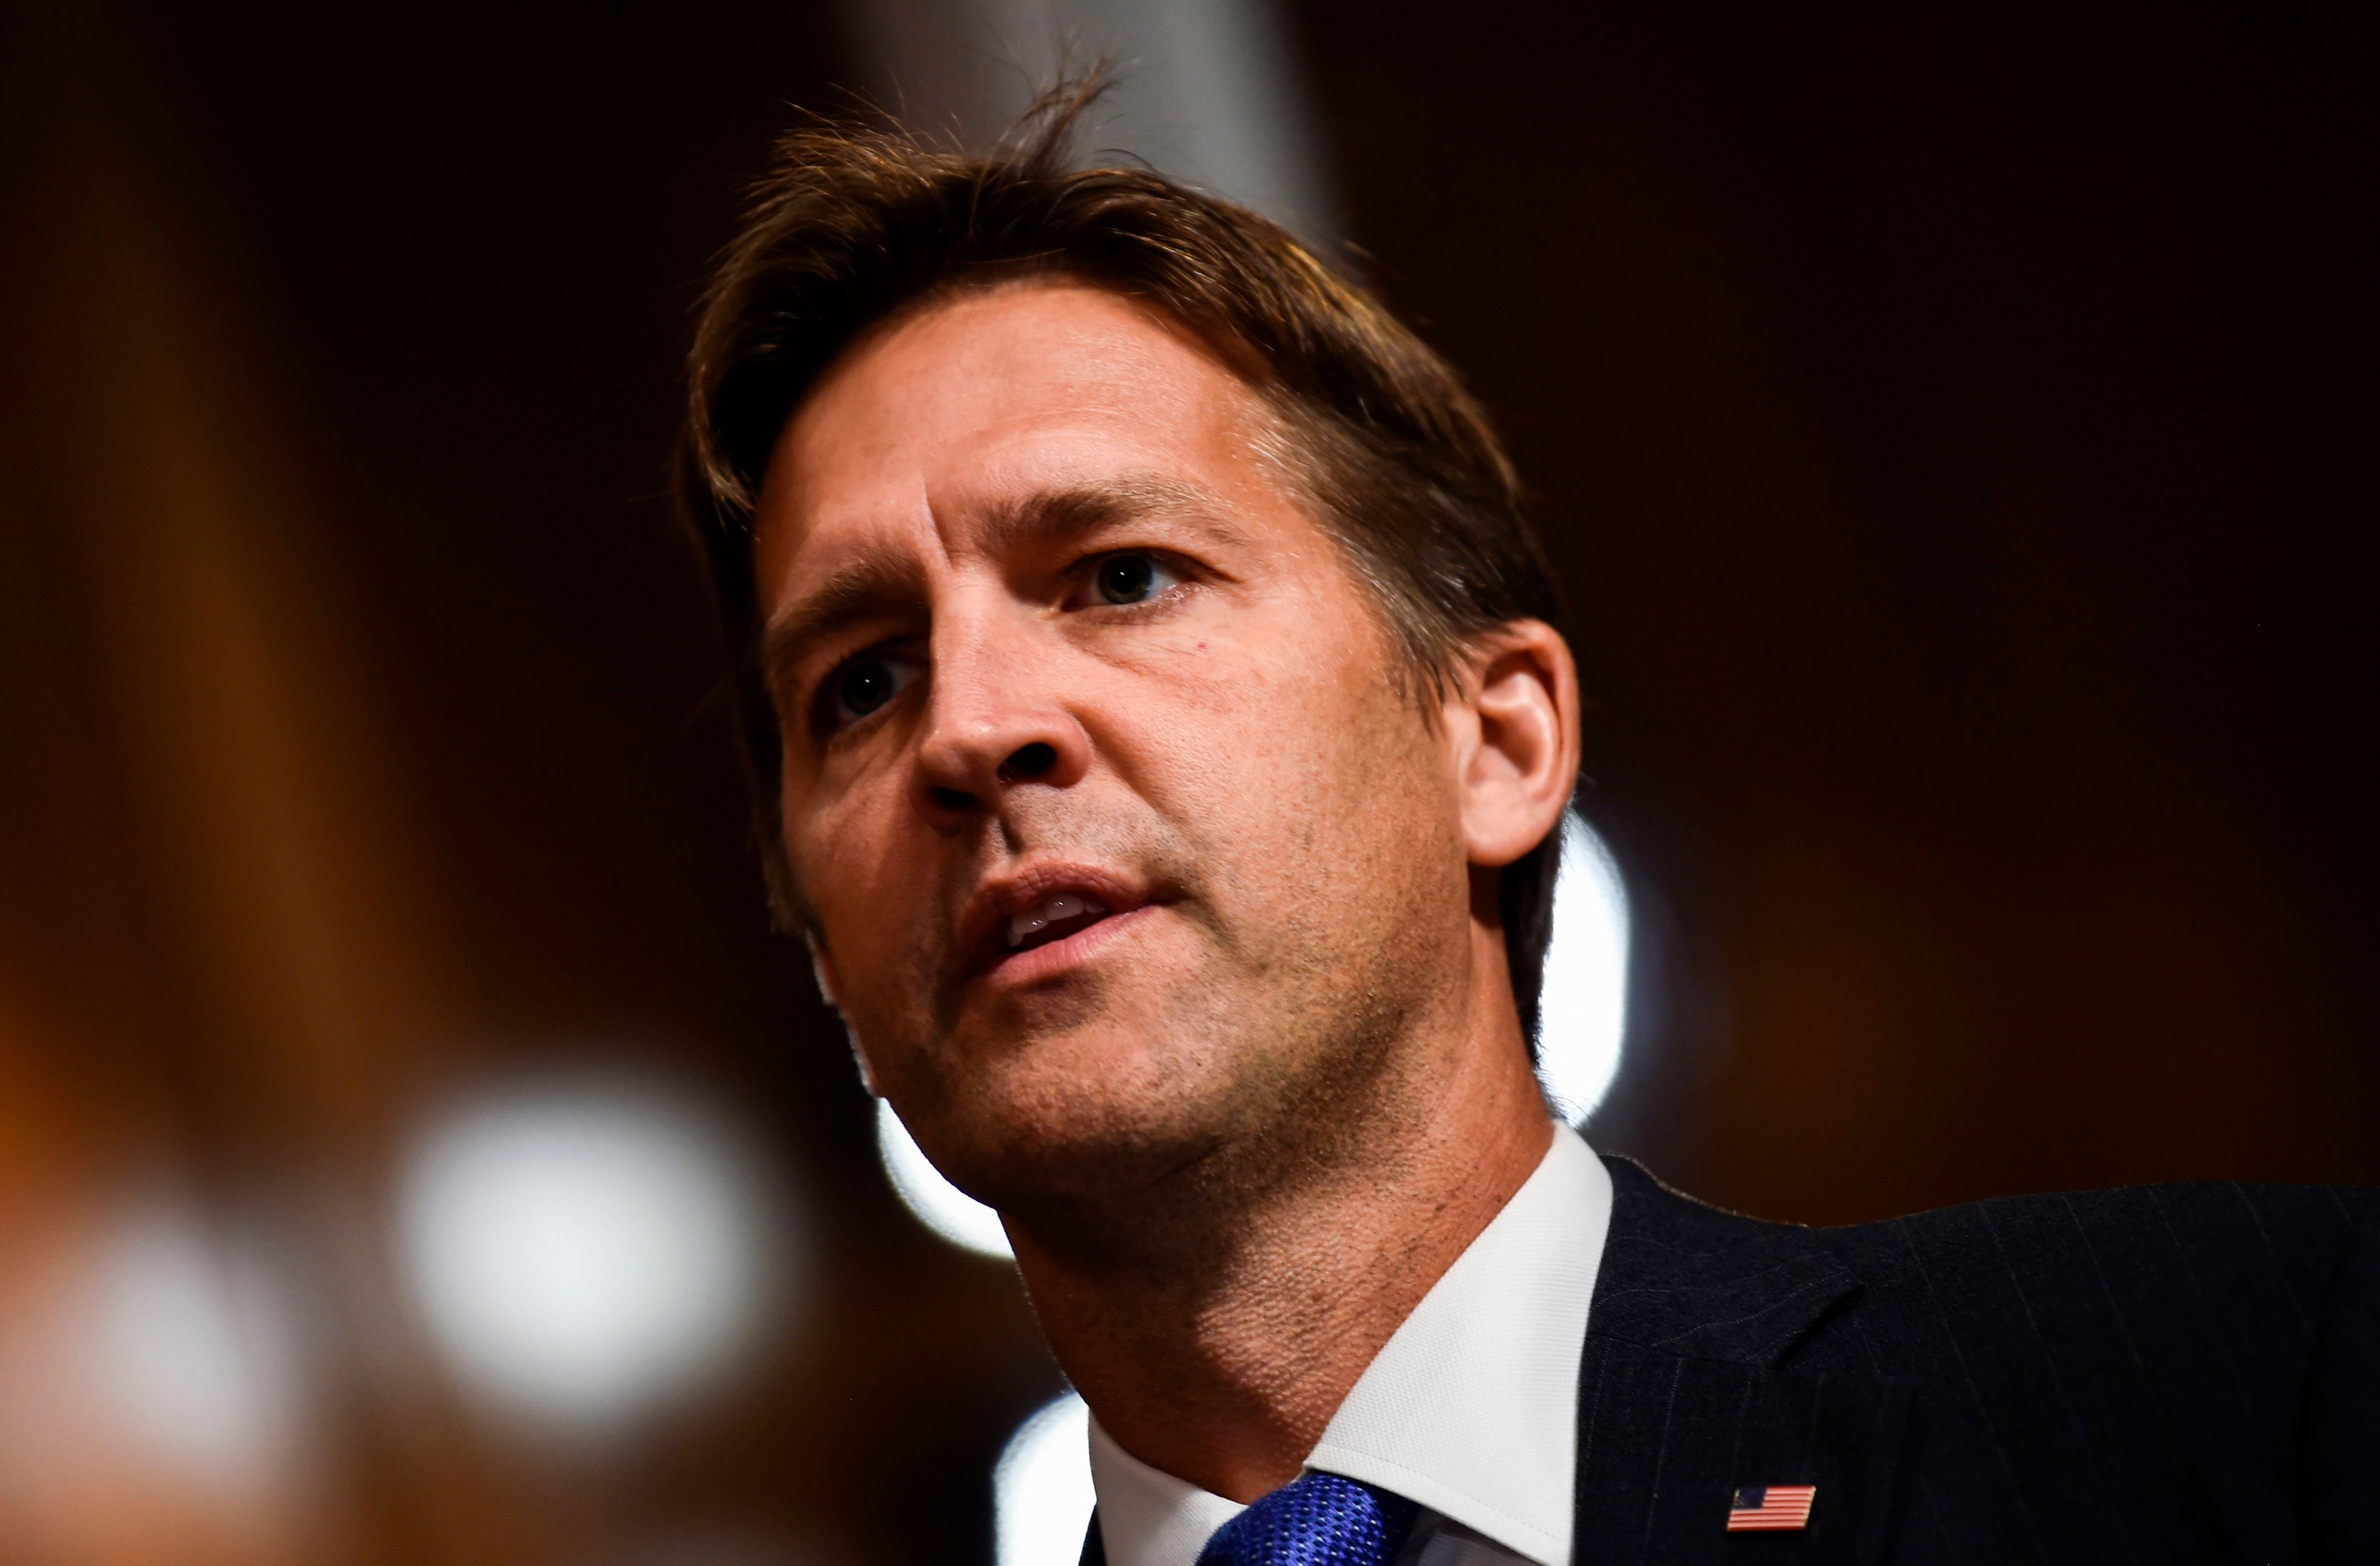 Ben Sasse Reacts To Trump's 'Horseface' Comment: 'That's Not The Way Men Act'